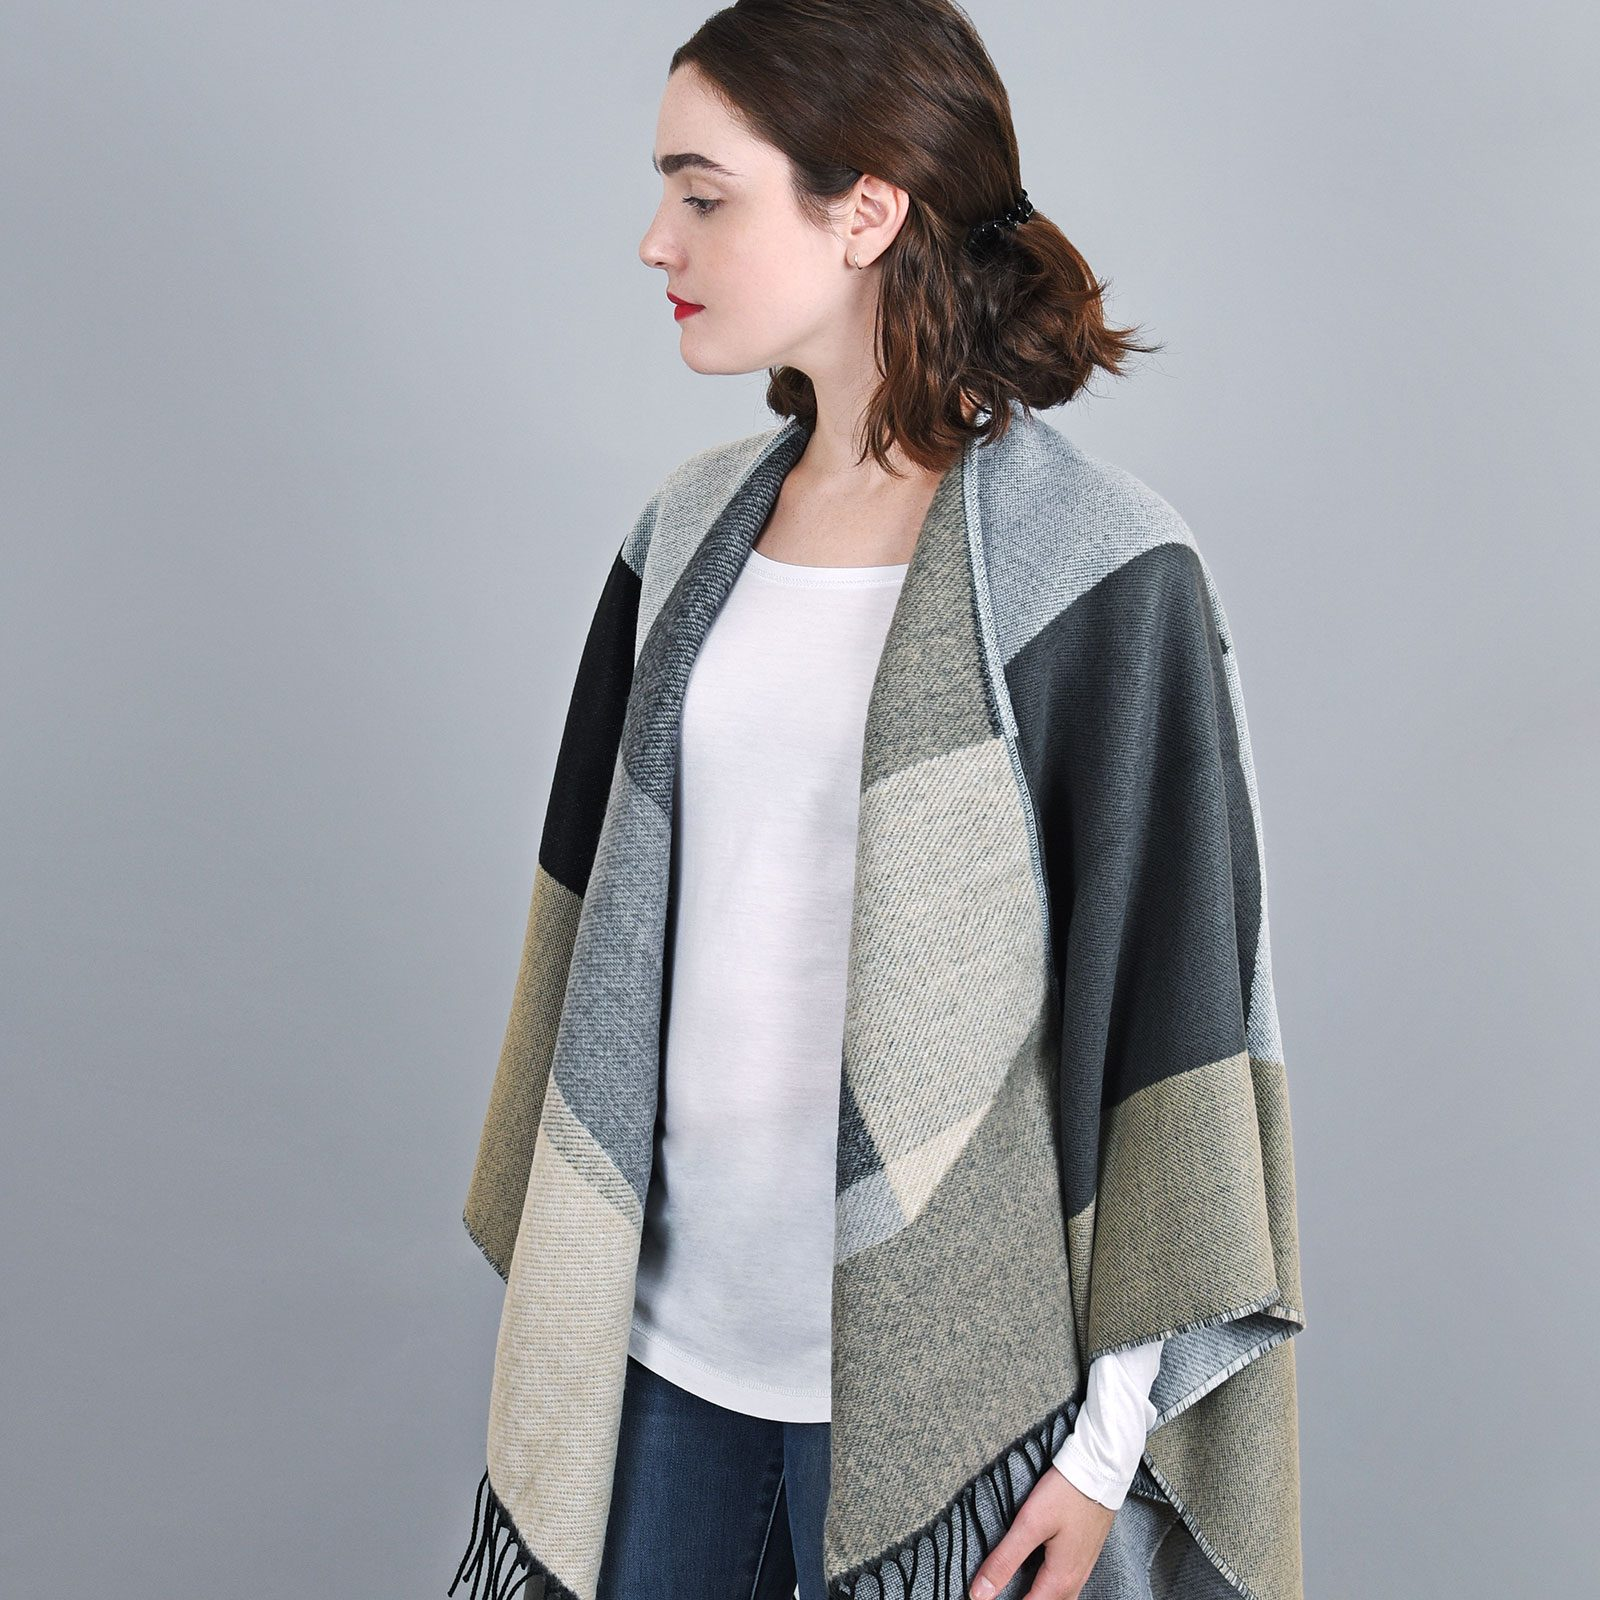 http://lookbook.allee-du-foulard.fr/wp-content/uploads/2018/11/AT-04151-VF16-2-poncho-chaud-hiver-patchwork-gris-noir-1600x1600.jpg